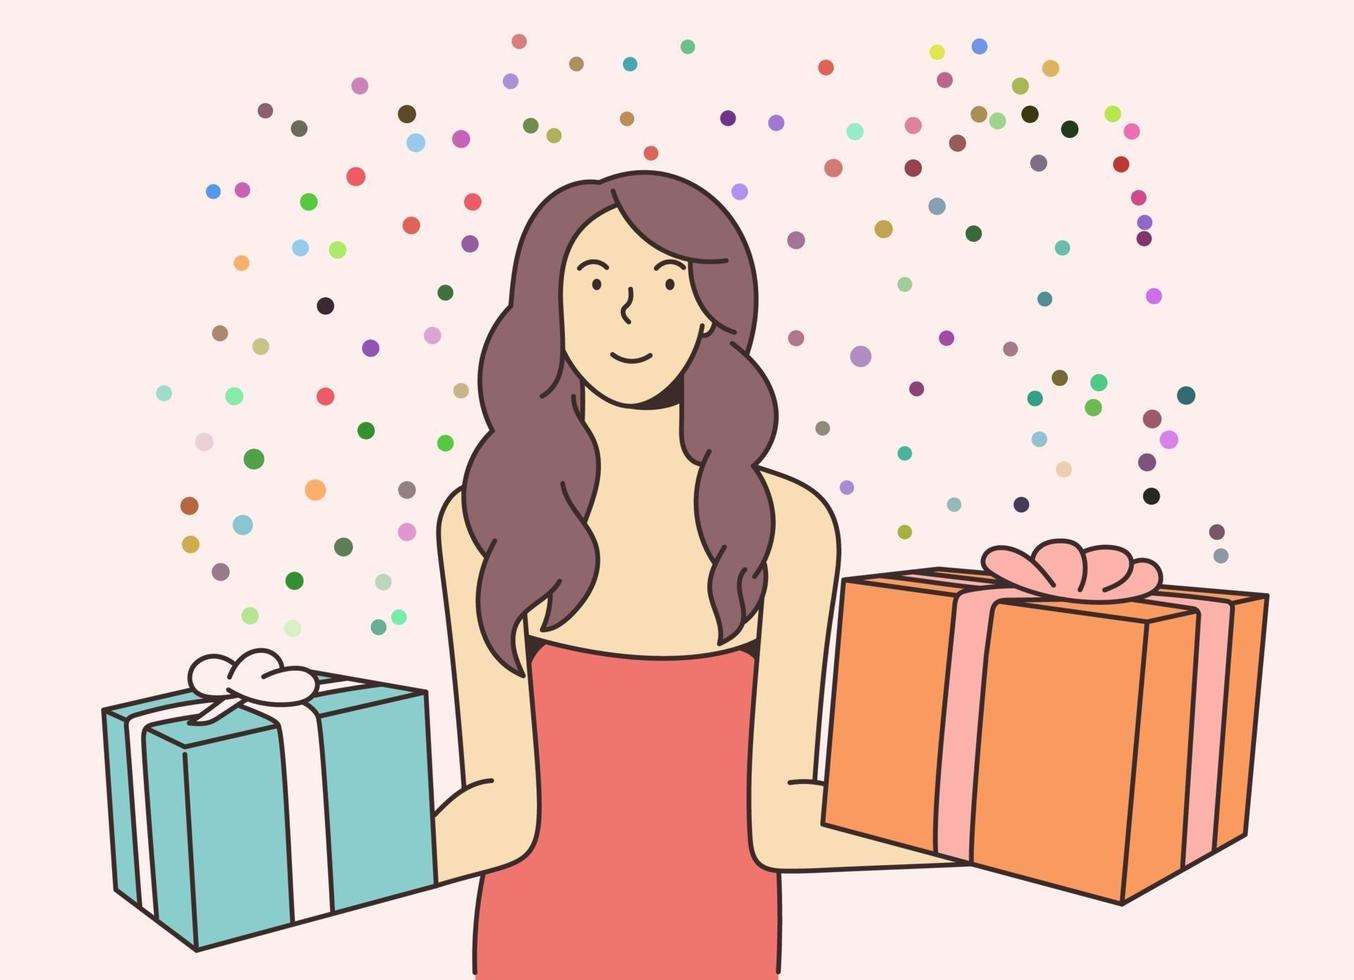 Holiday, gift, celebration concept. Young happy cheerful smiling excited woman girl celebrating new year and holding presents. New year christmas or birthday gifts giveaway illustration. vector